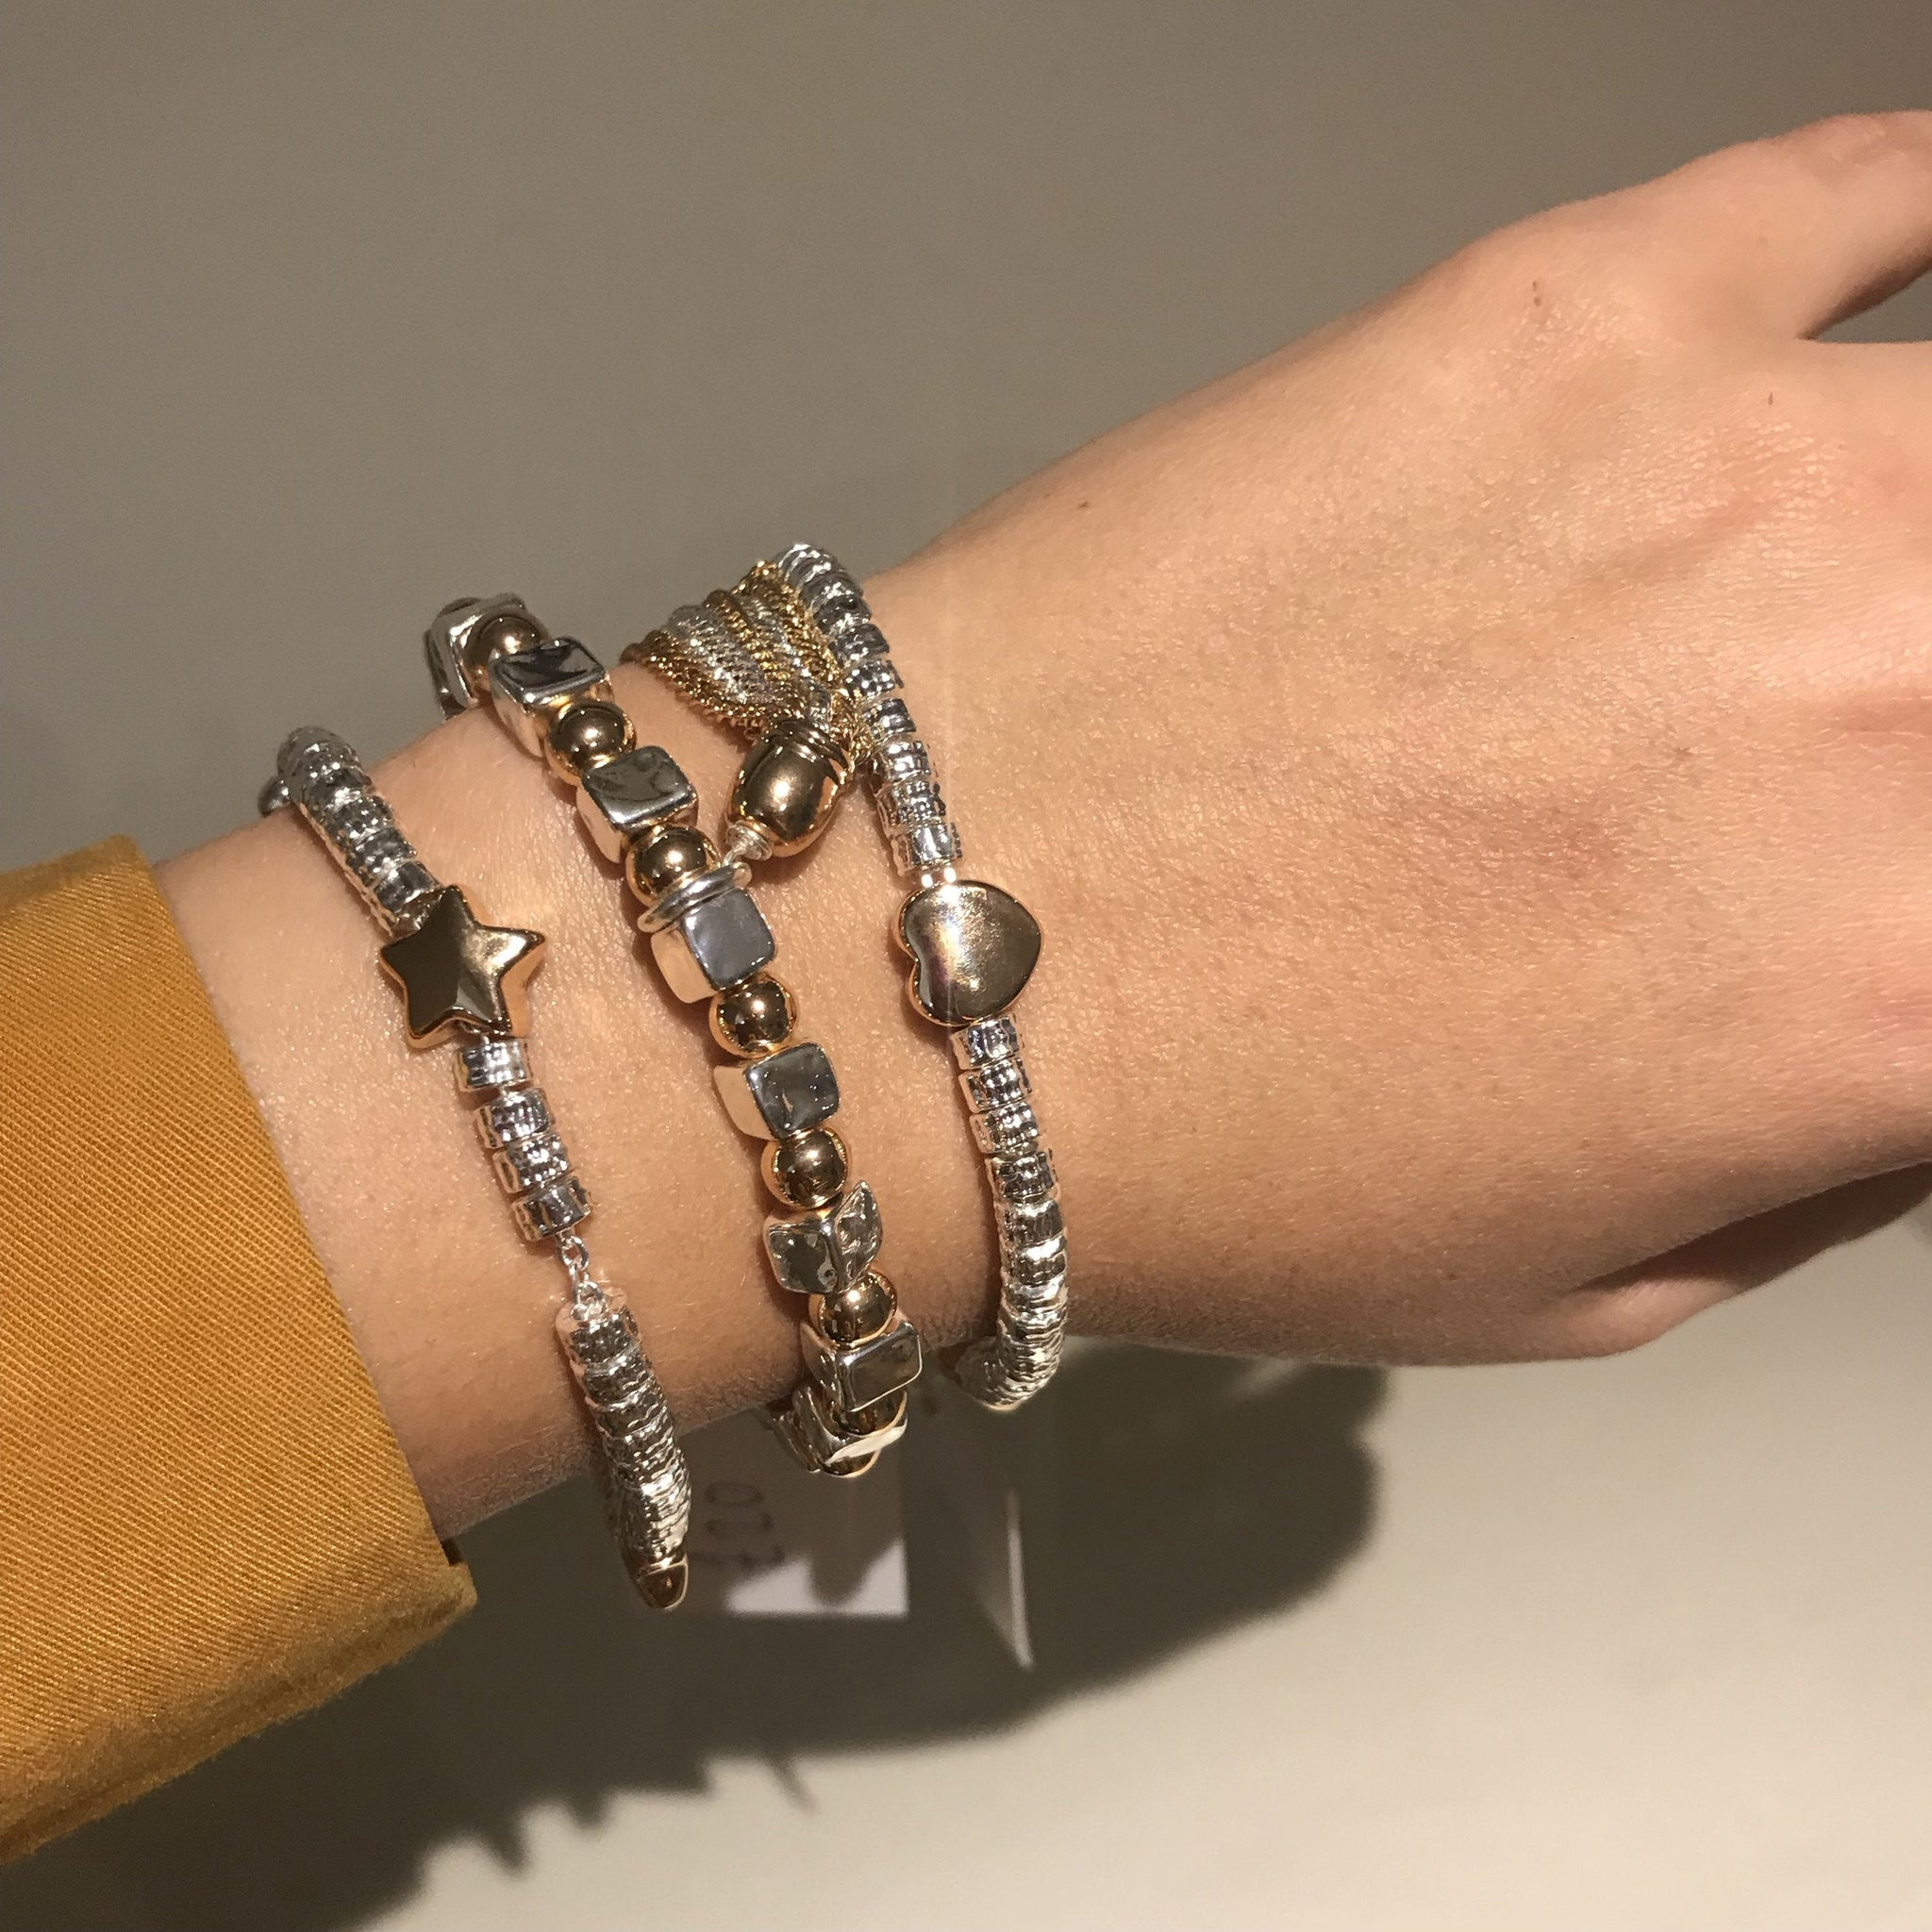 Tilley and Grace Capri bracelets